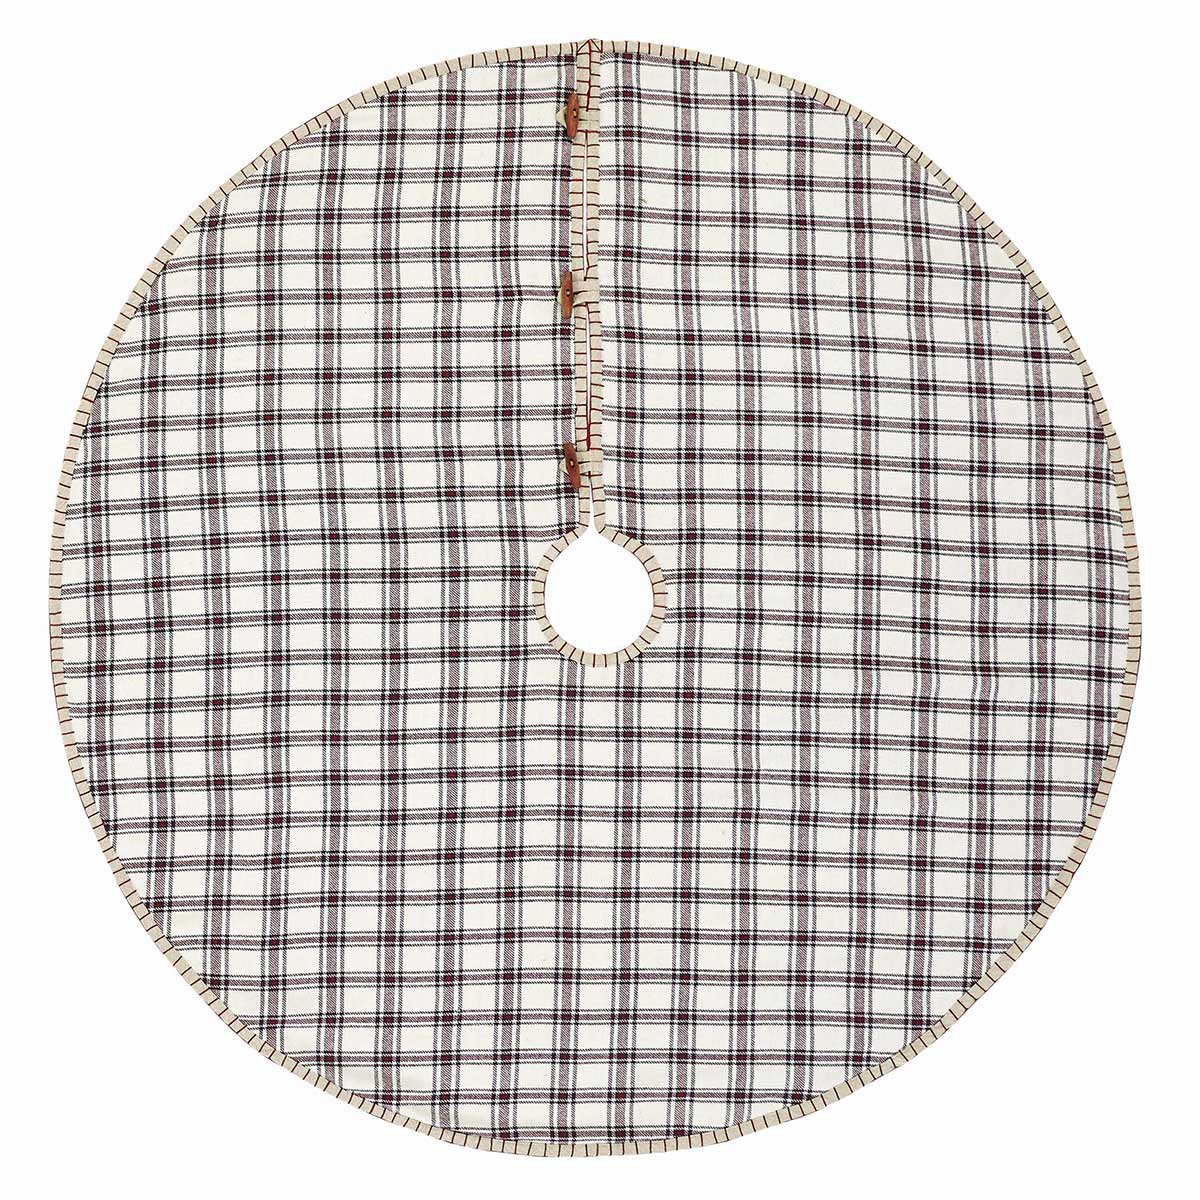 Amory Christmas Tree Skirt, by VHC Brands